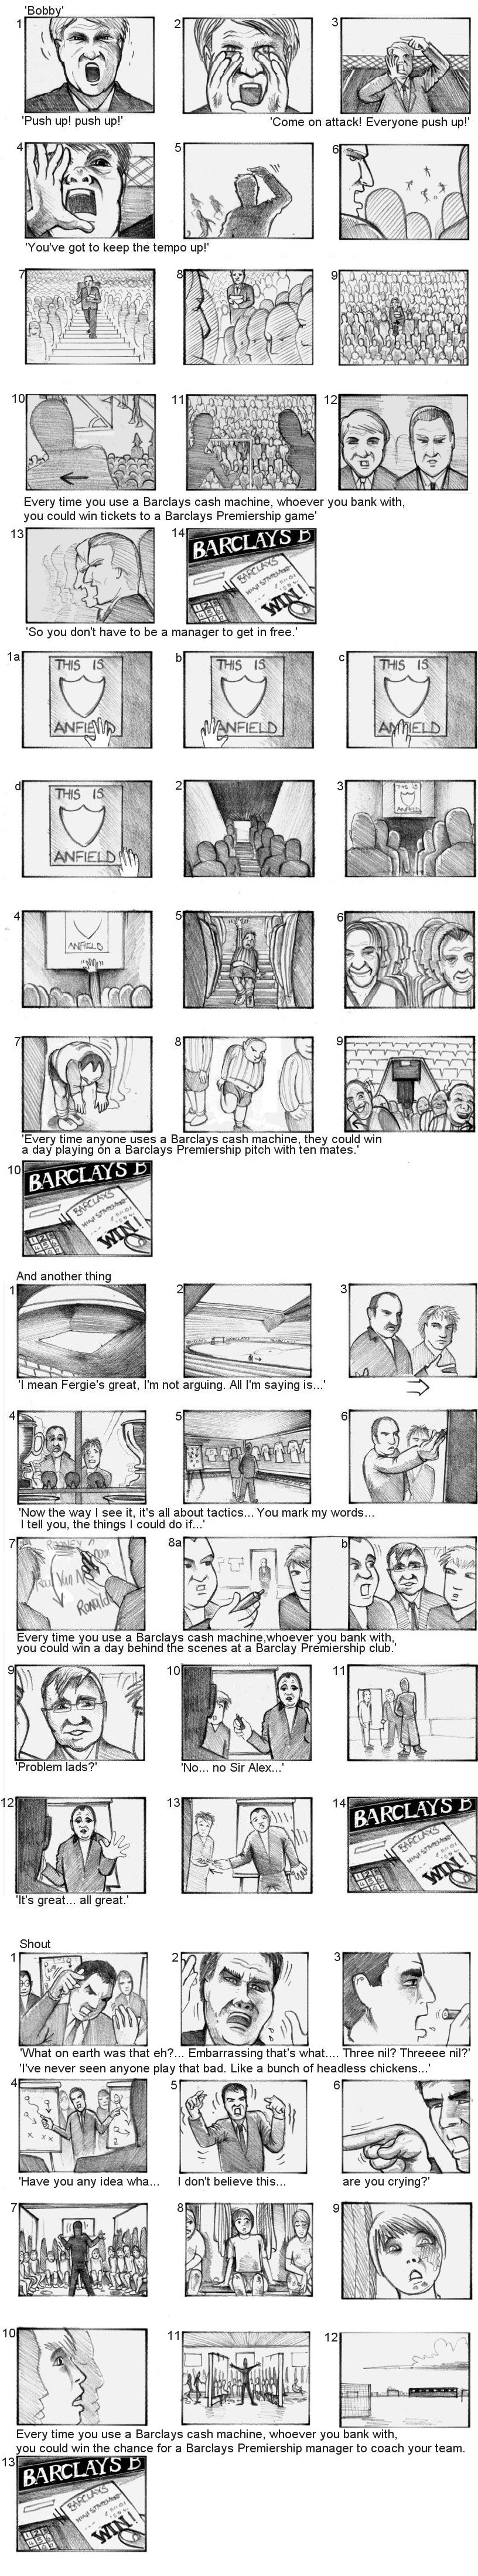 BARCLAYS PREMIERSHIP STORYBOARDS BY ANDY SPARROW